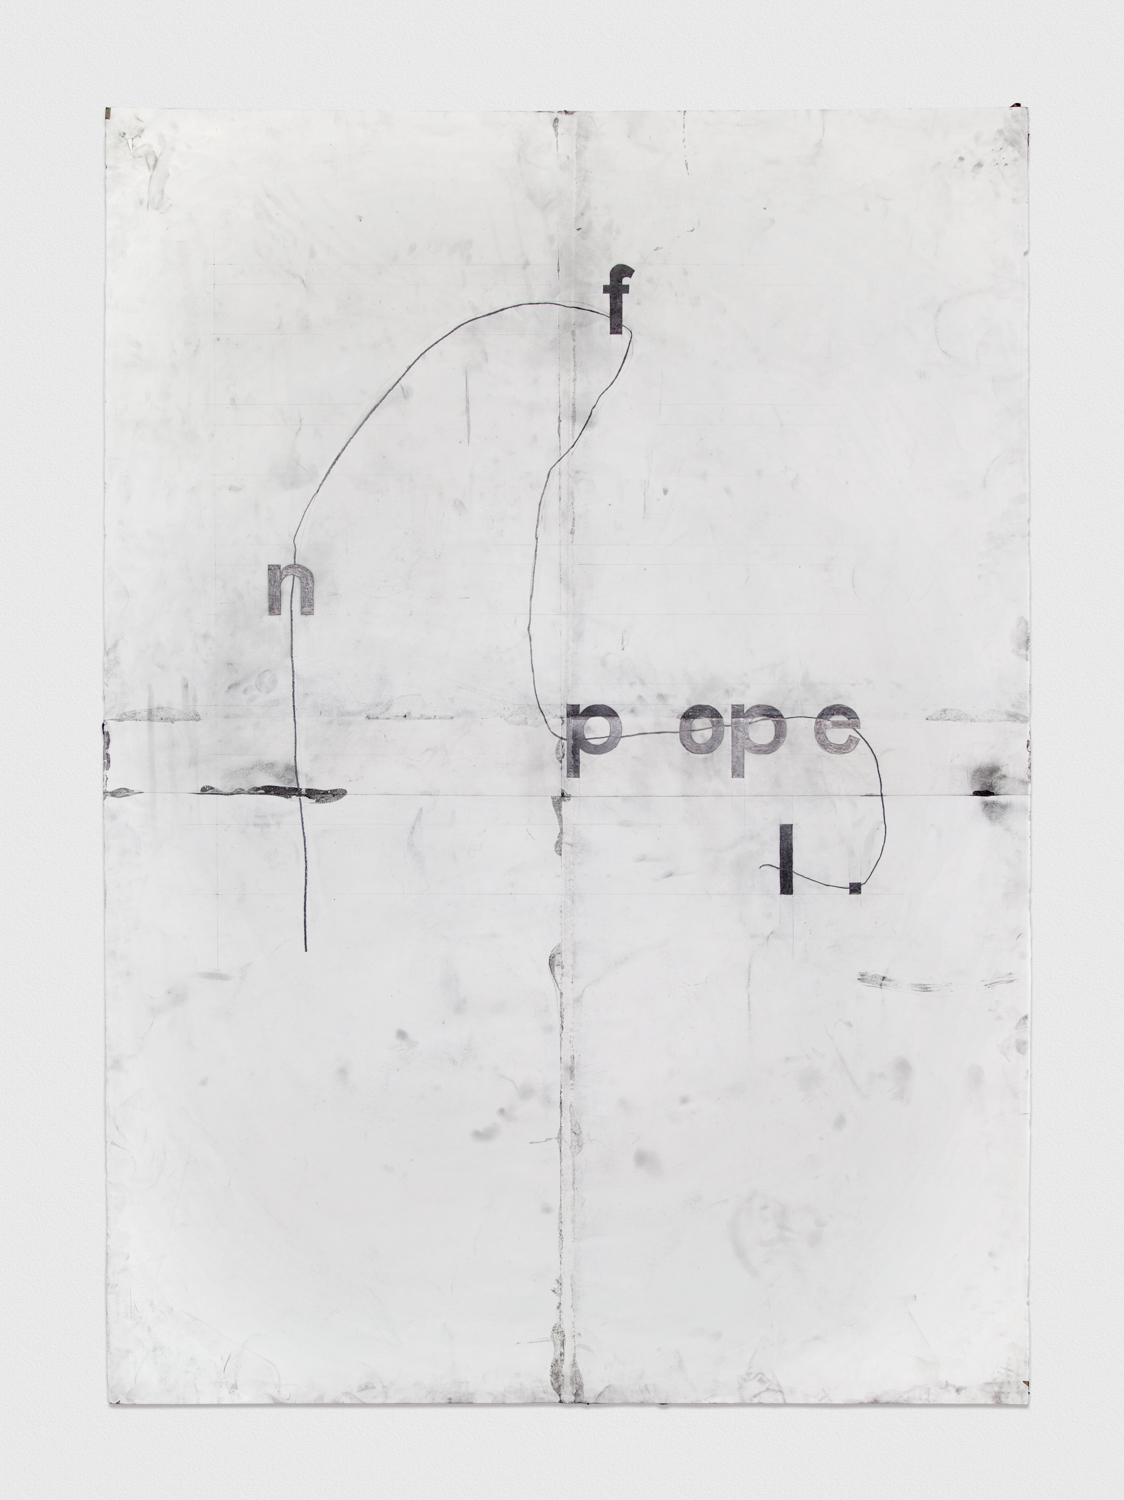 Tony Lewis  f n pope.l   2012 Pencil and graphite powder on paper 84h x 60w in TL008